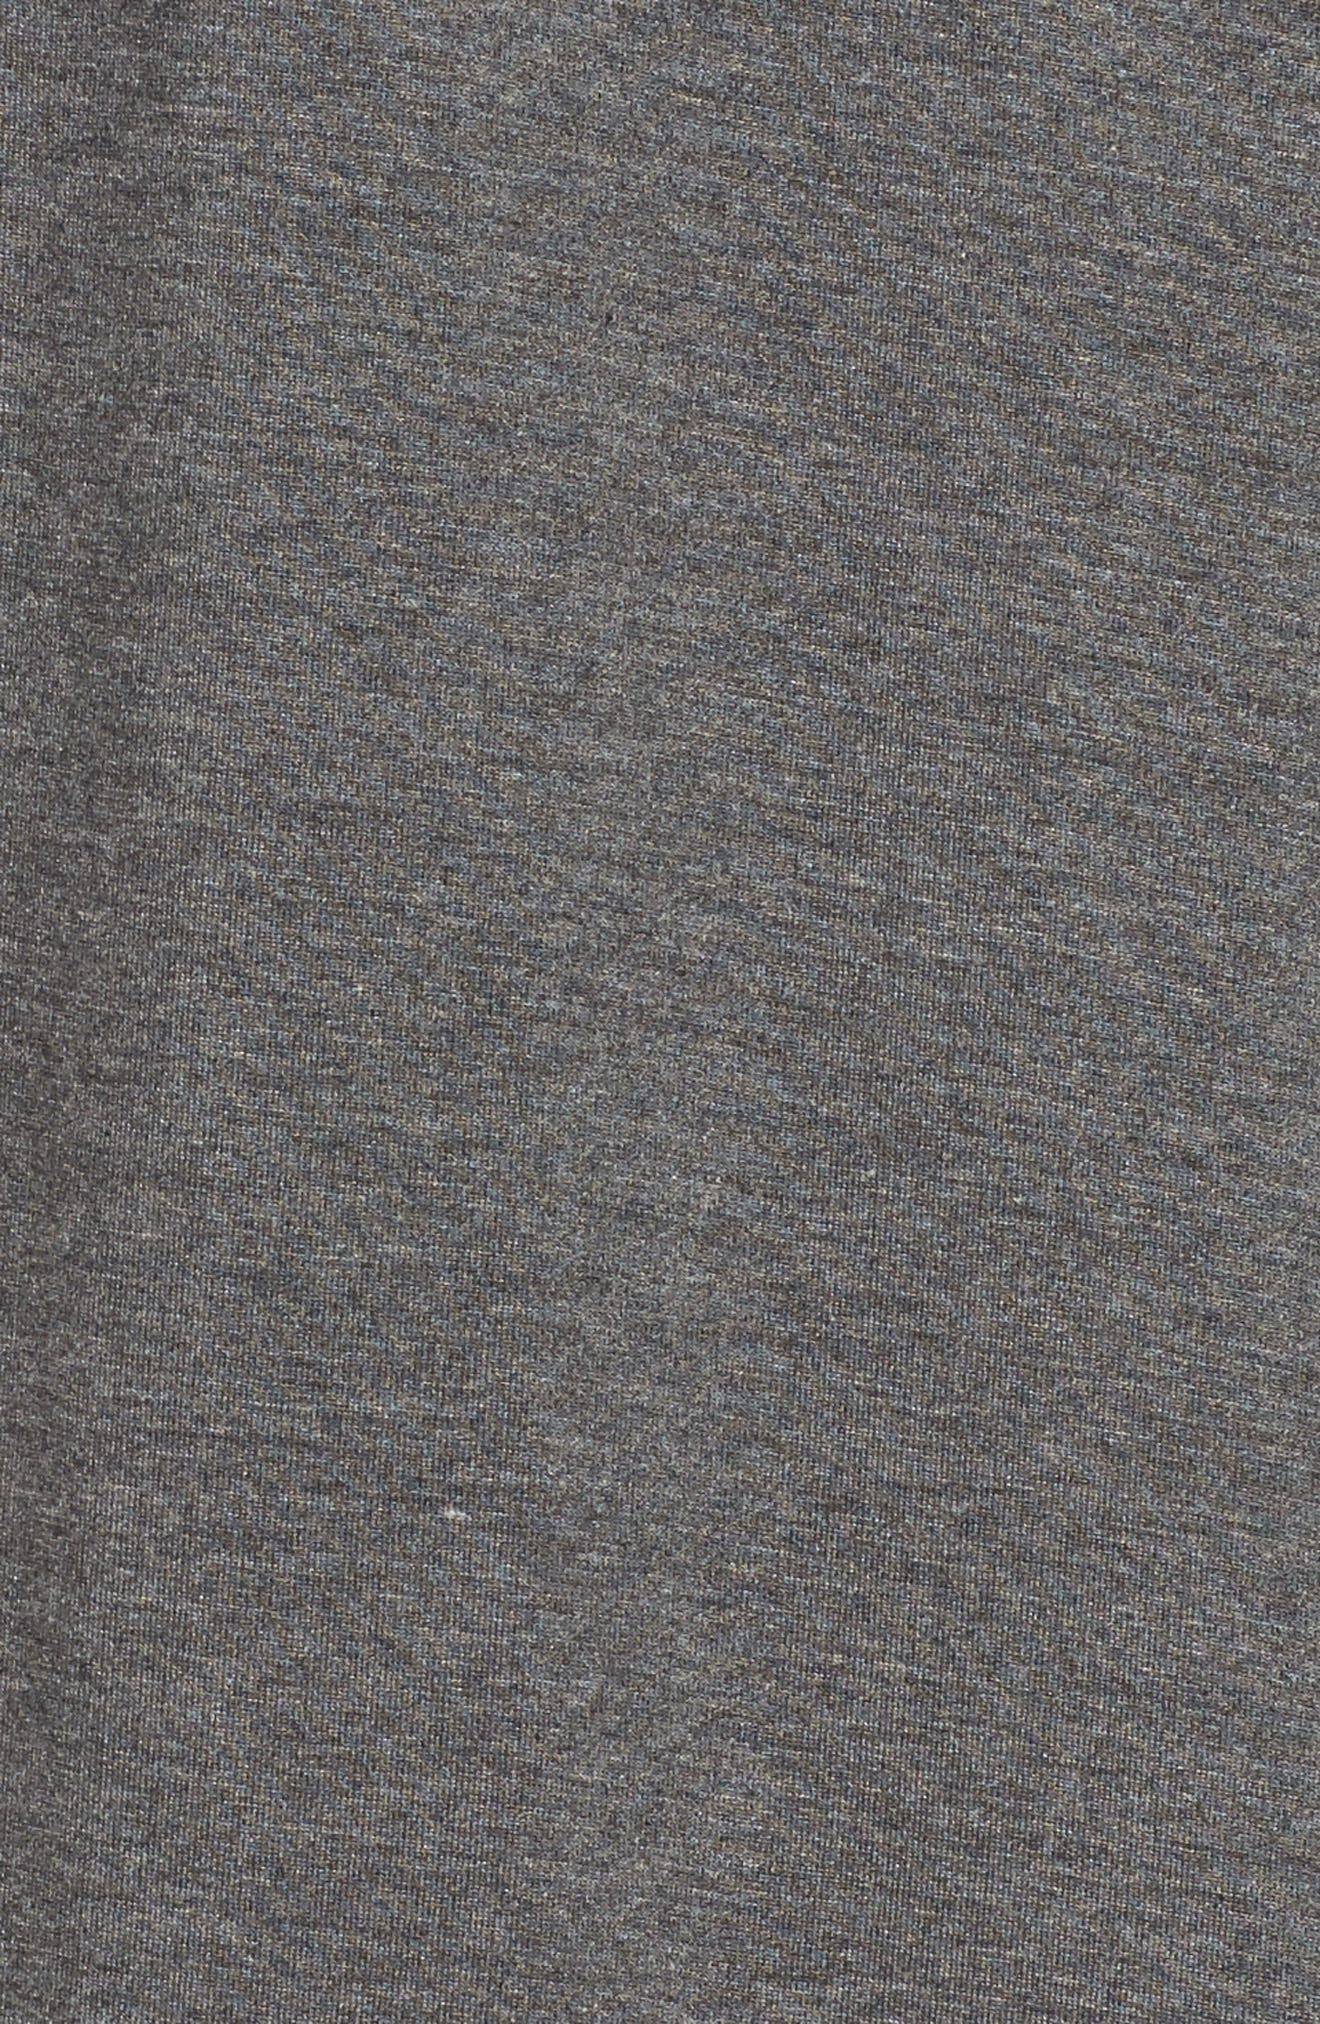 Lounge Top,                             Alternate thumbnail 6, color,                             Charcoal Heather